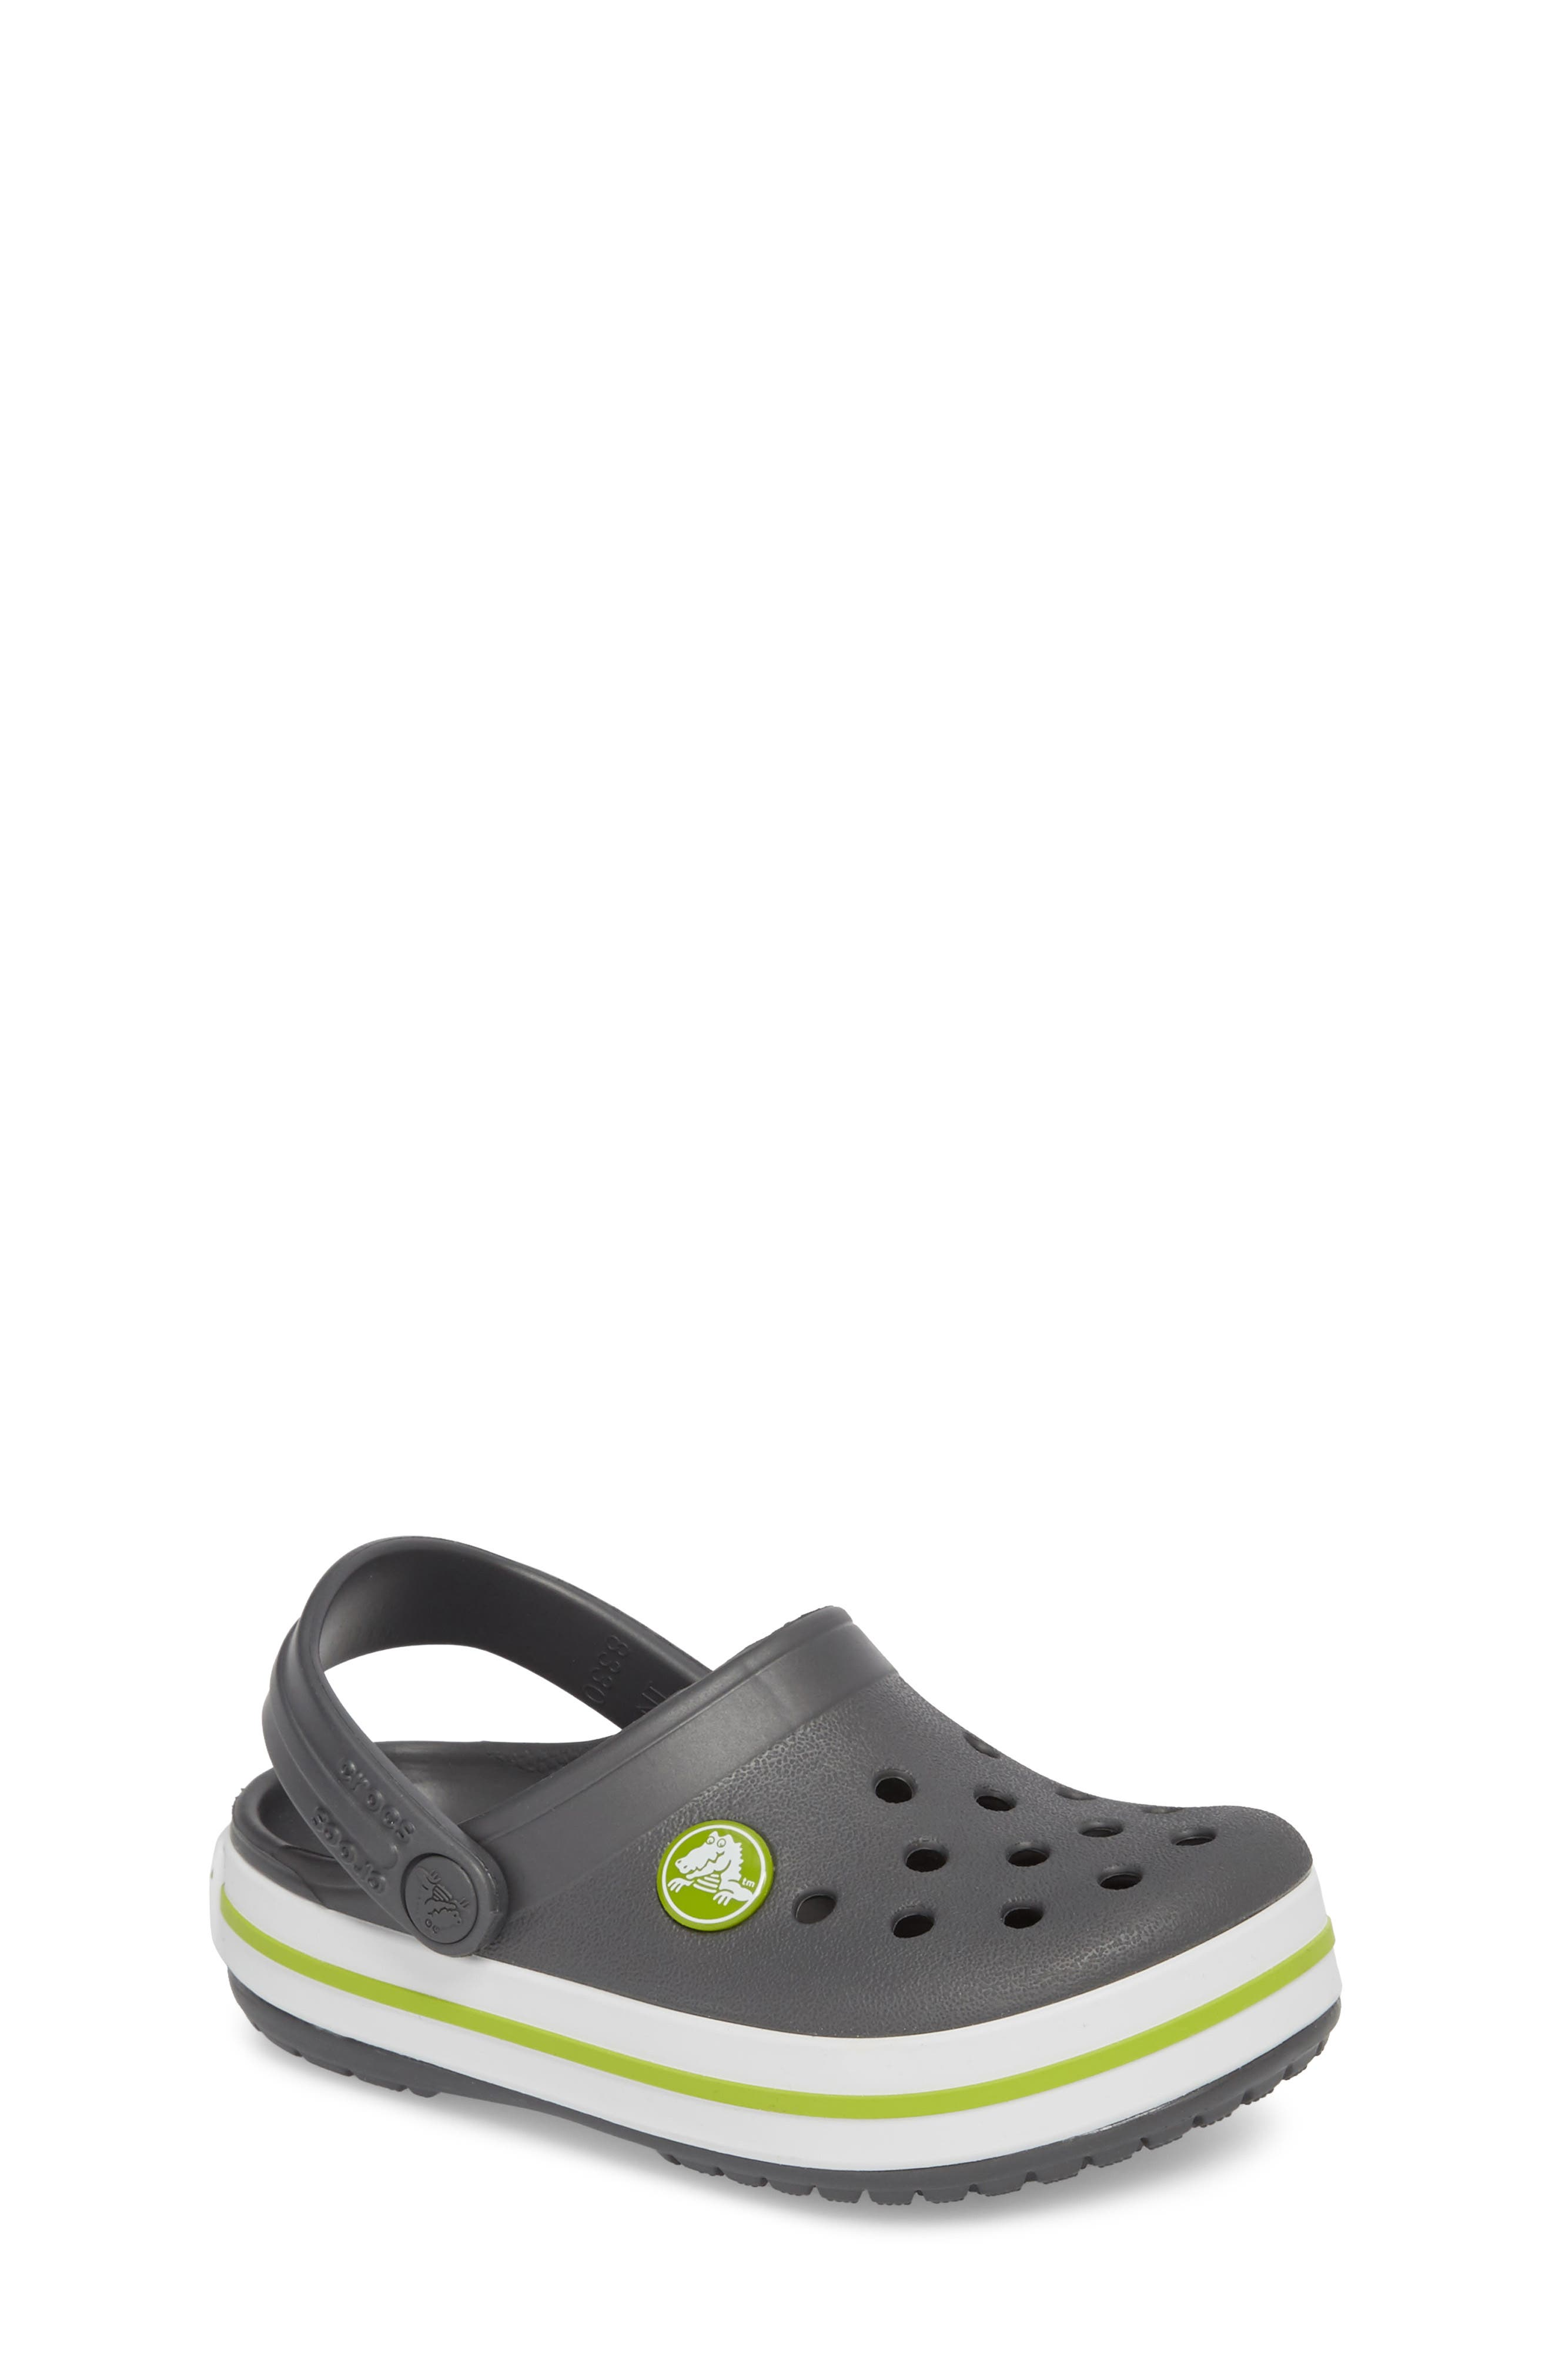 Crocband Clog,                             Main thumbnail 1, color,                             GRAPHITE/ GREEN